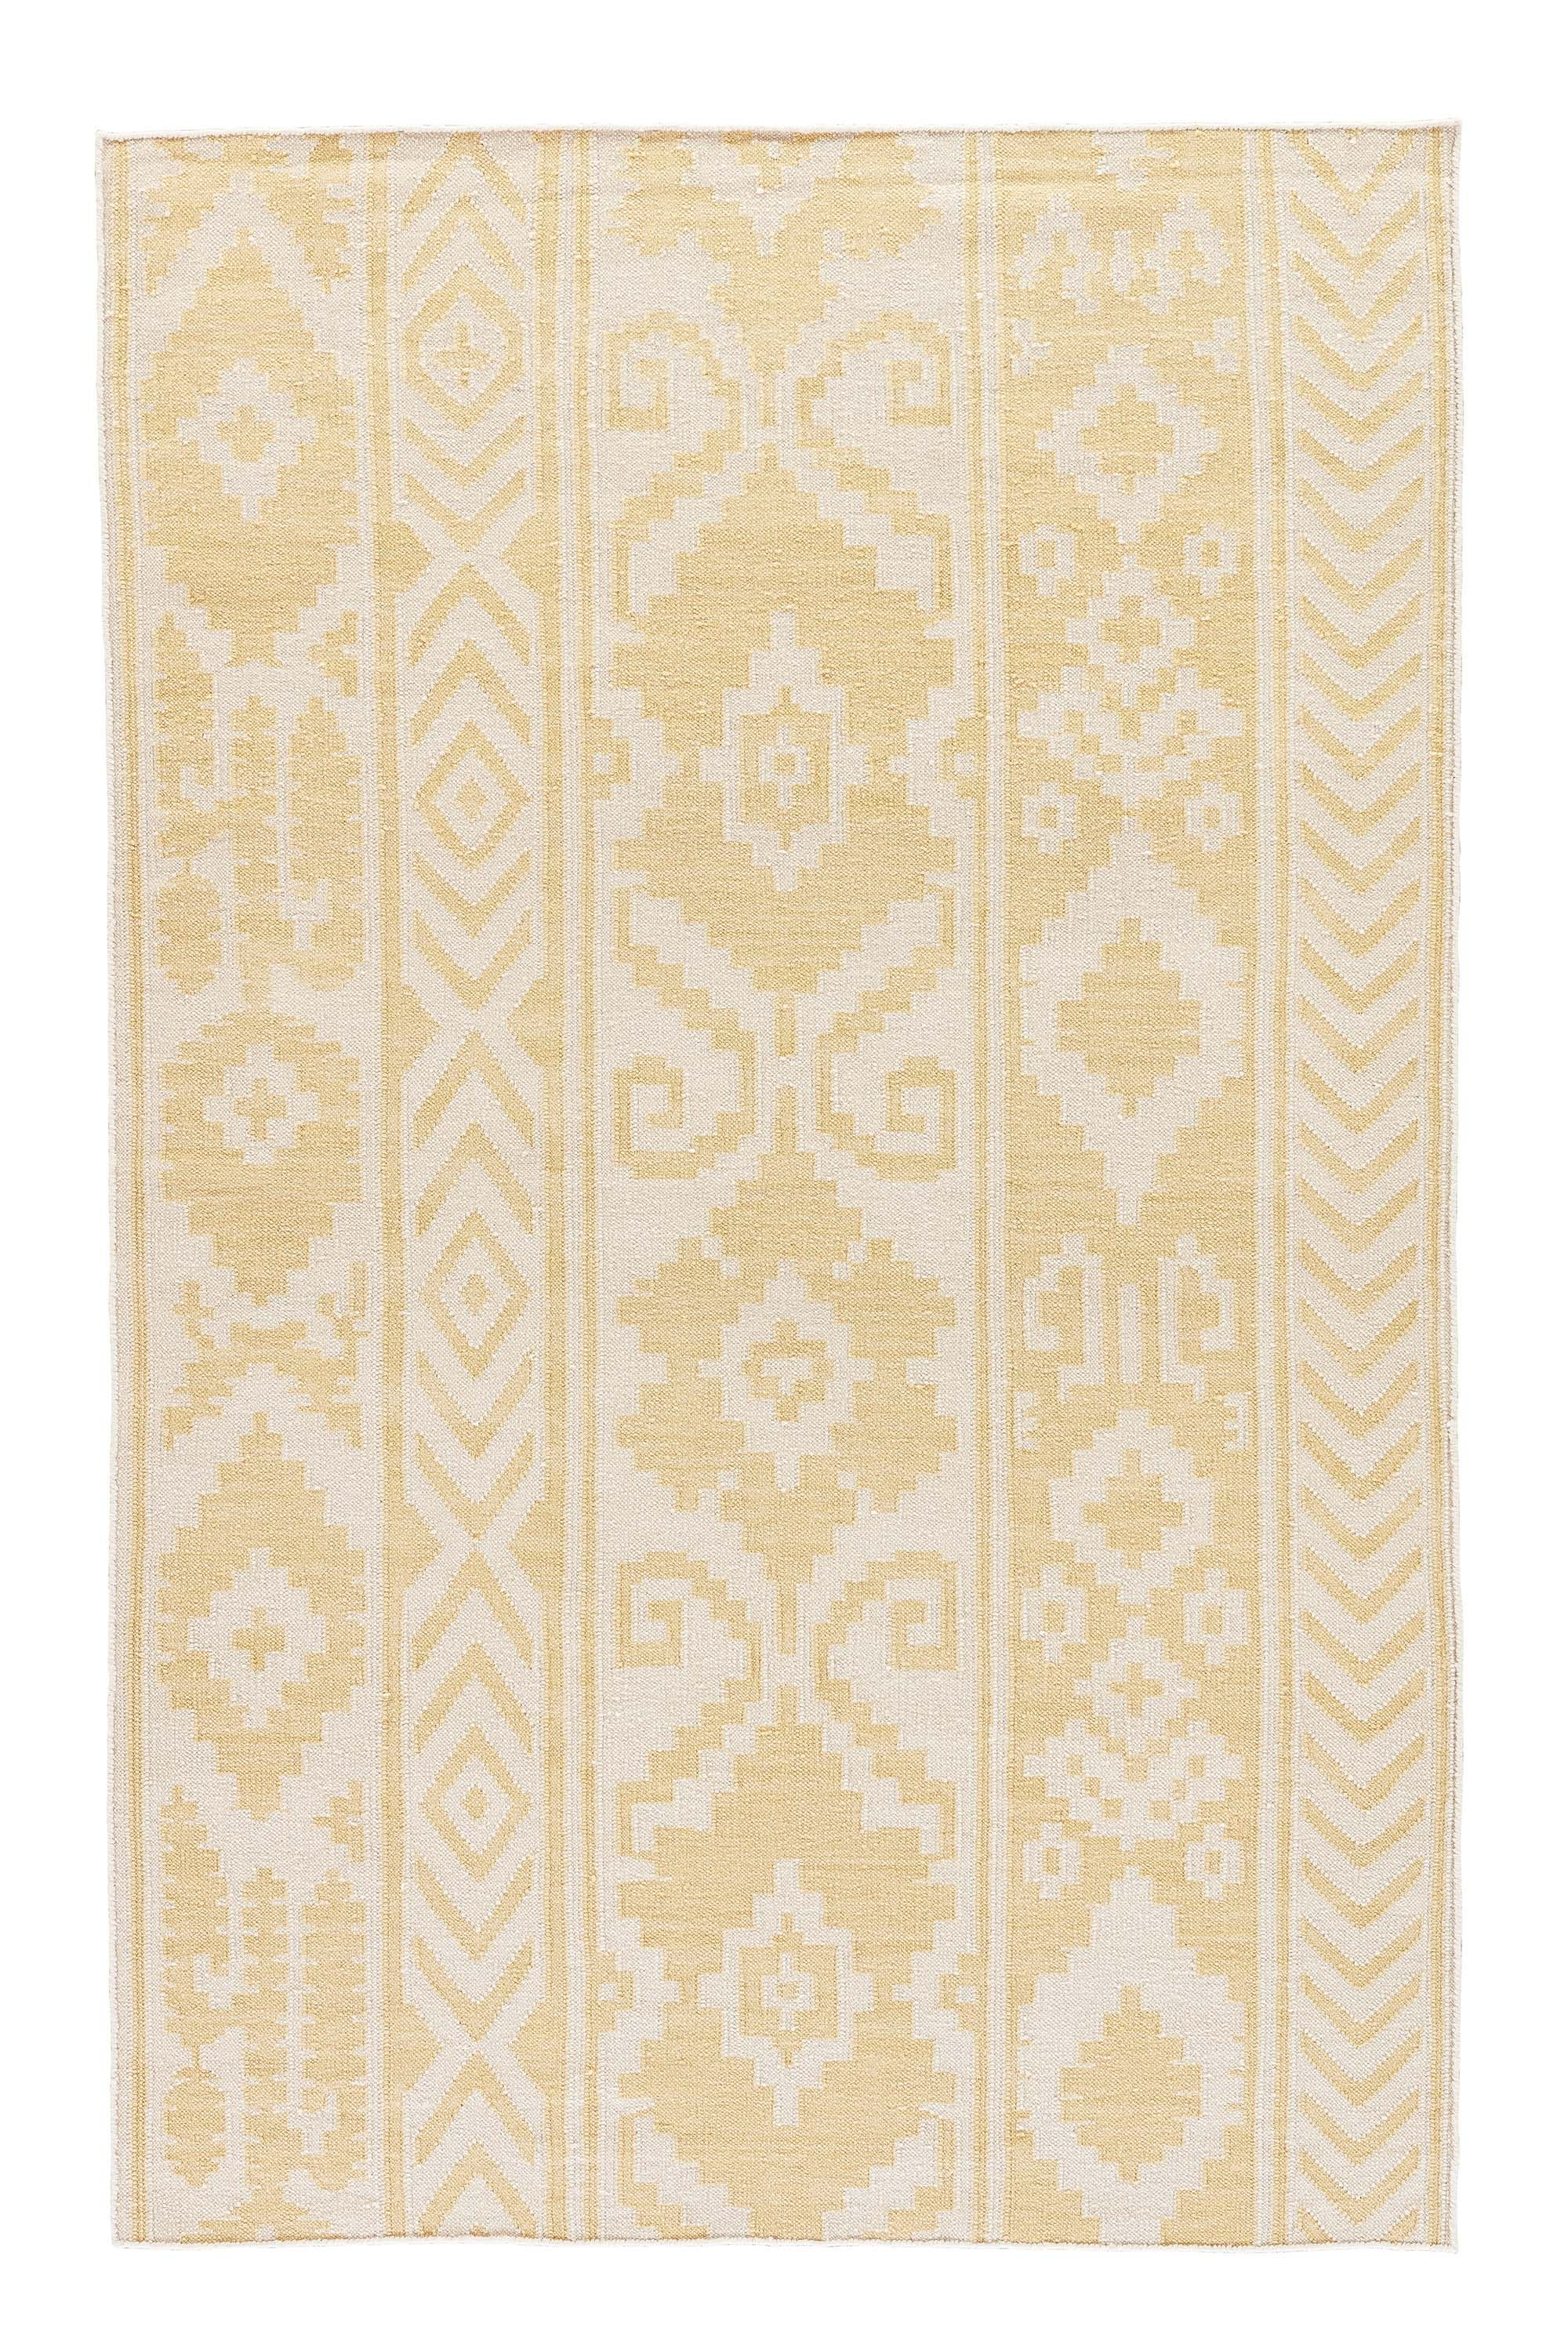 Rectangle Yellow Ikat Dhurrie Wool Boho/bohemian recommended for Kitchen, Bedroom, Bathroom, Dining Room, Office, Hallway, Living Room